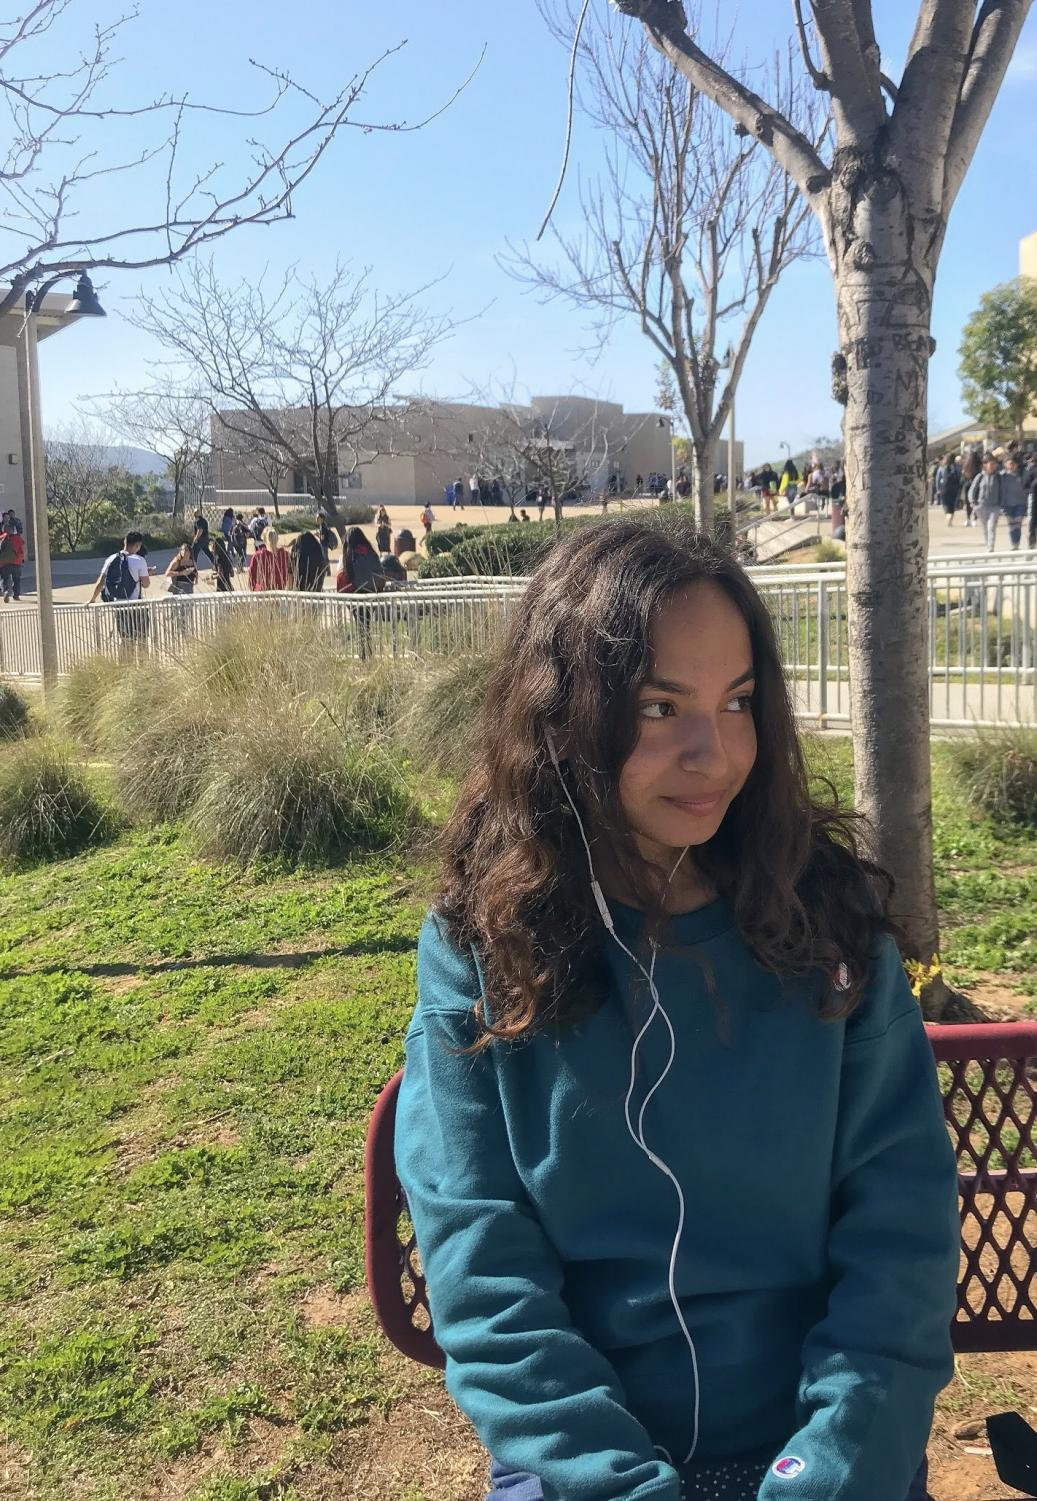 Alexa Juarez's favorite artist is Rex Orange County and listens to his music daily.